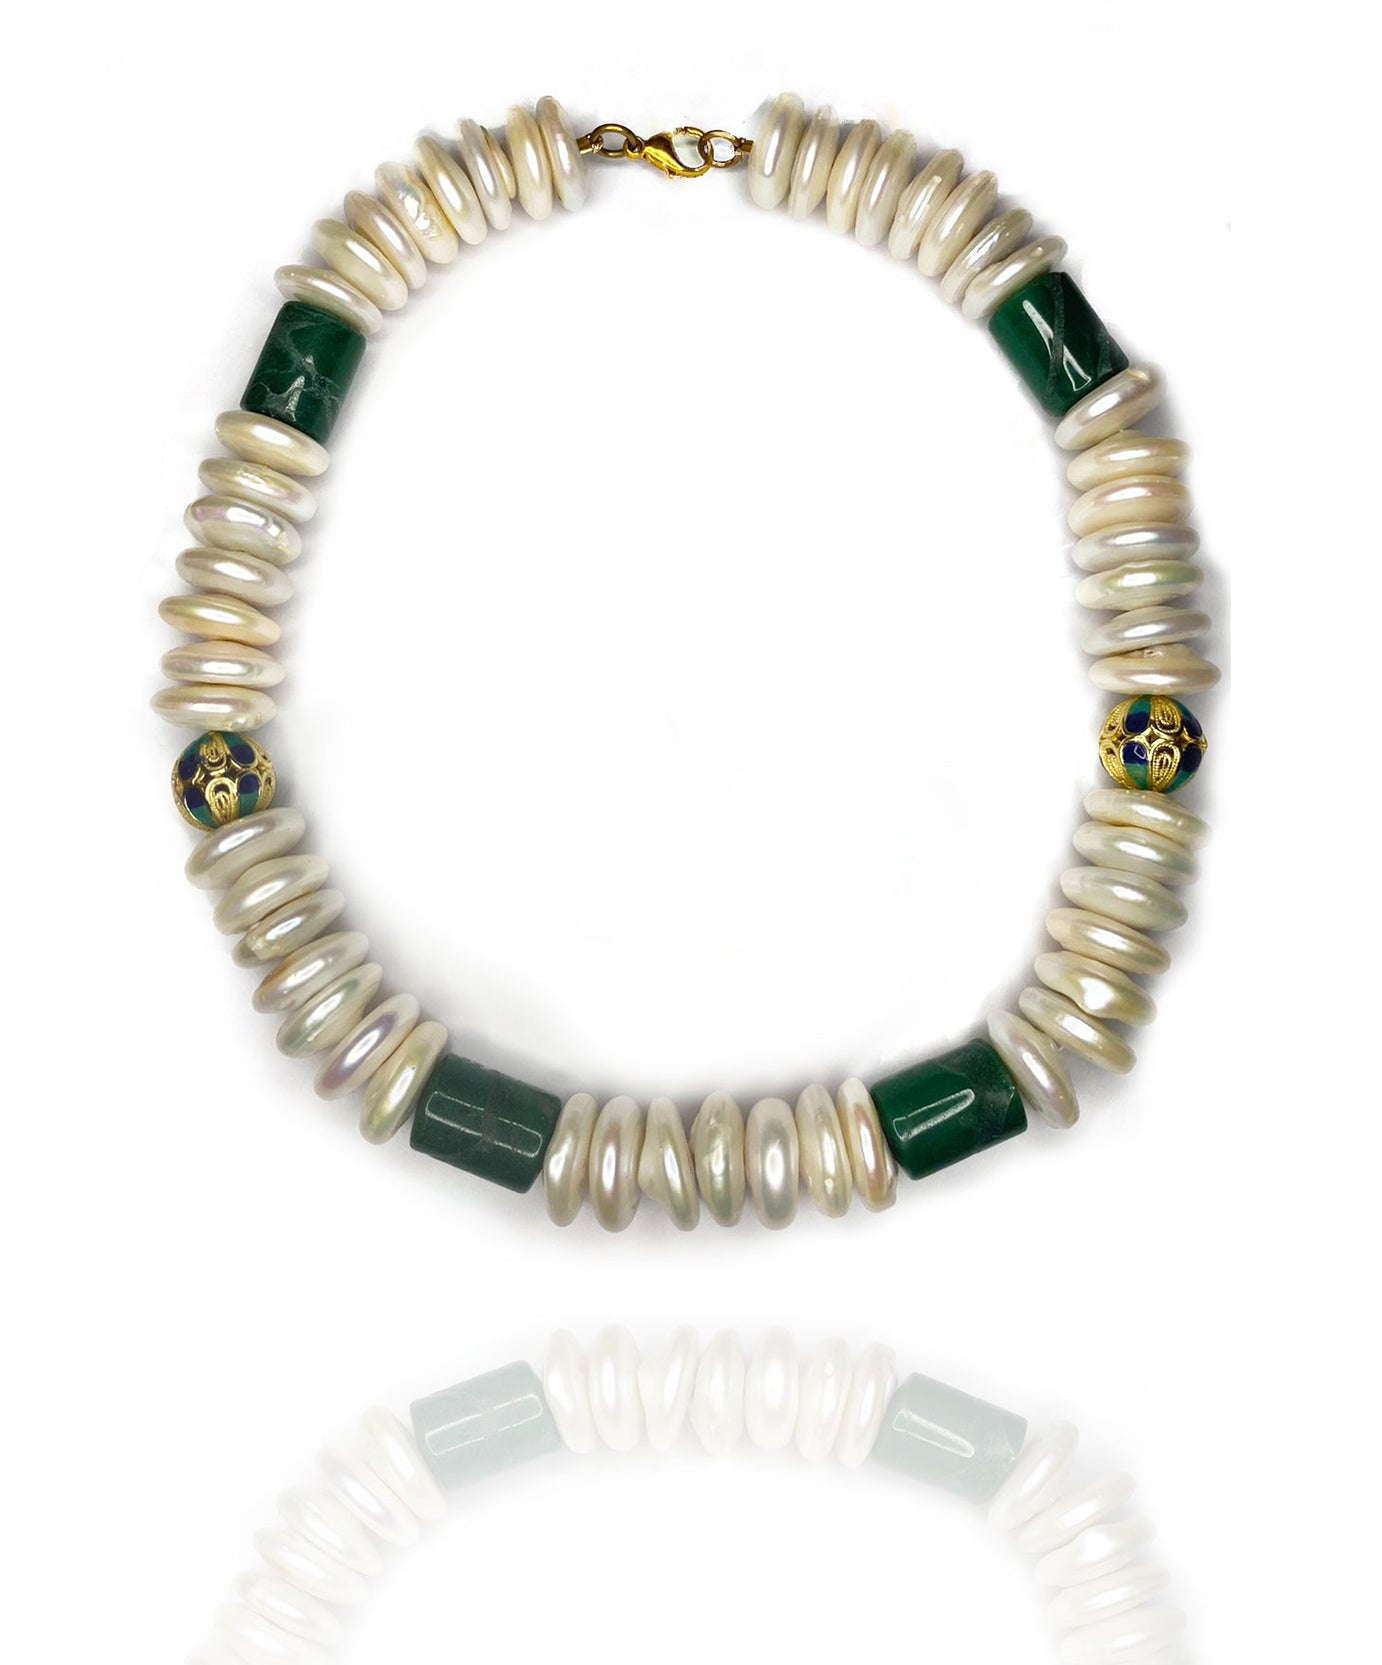 Welcome to the magical garden of lovingly designed combination of shell pearls, jade and enamel in sterling silver. East to wear and match almost every outfit.